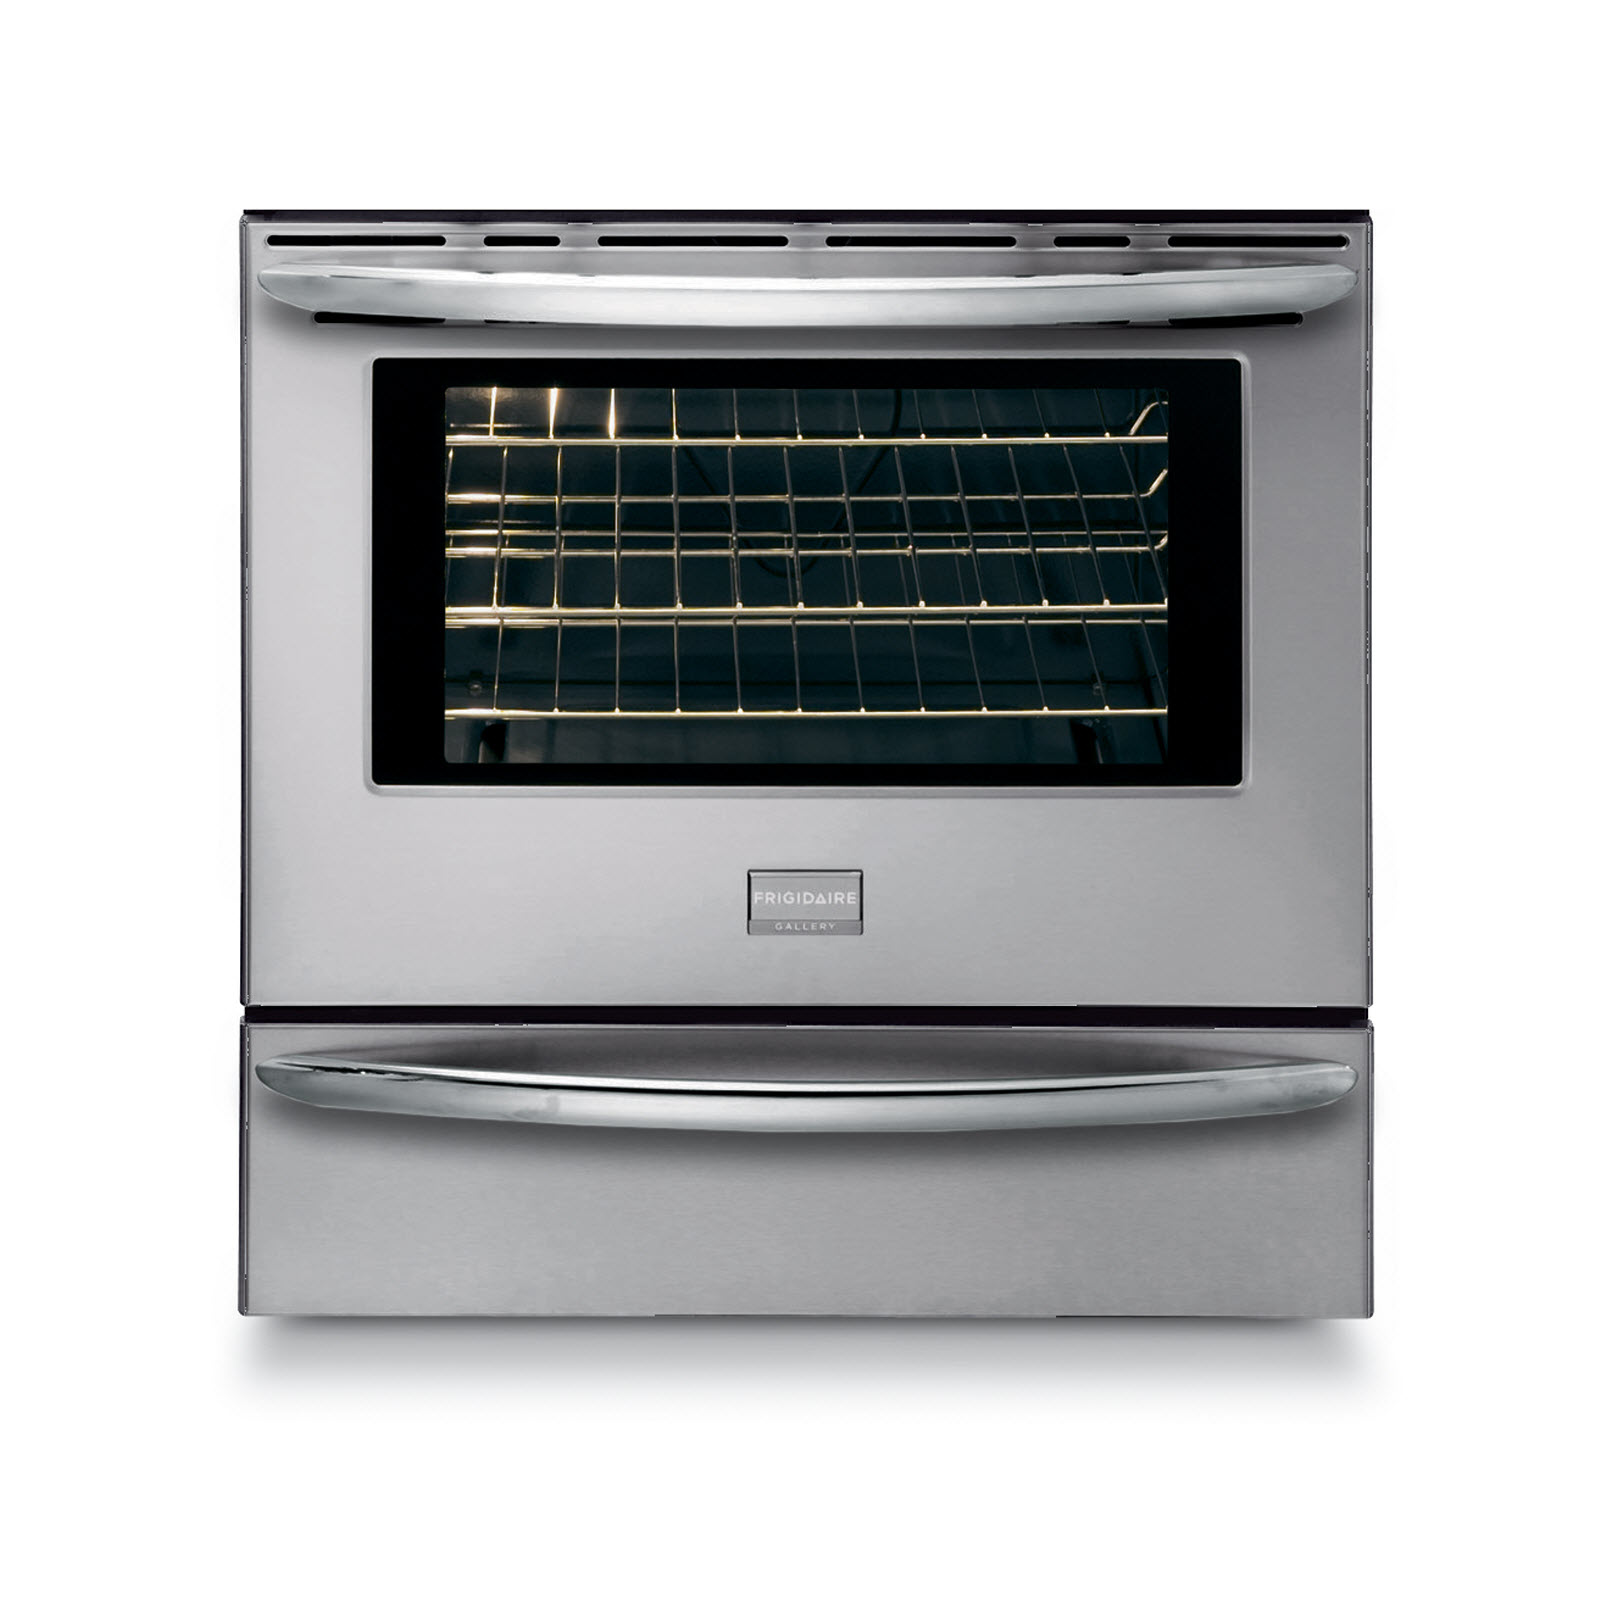 Frigidaire Gallery 5.0 cu. ft. Freestanding Gas Range - Stainless Steel